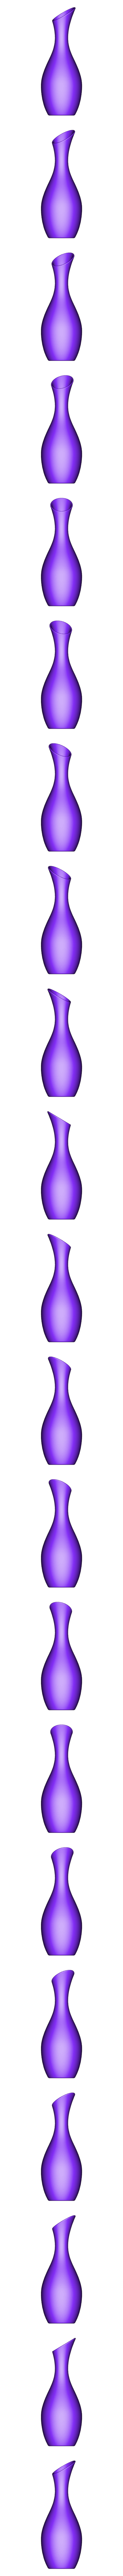 contemporary_vase.stl Download free STL file Contemporary Vase • Template to 3D print, O3D